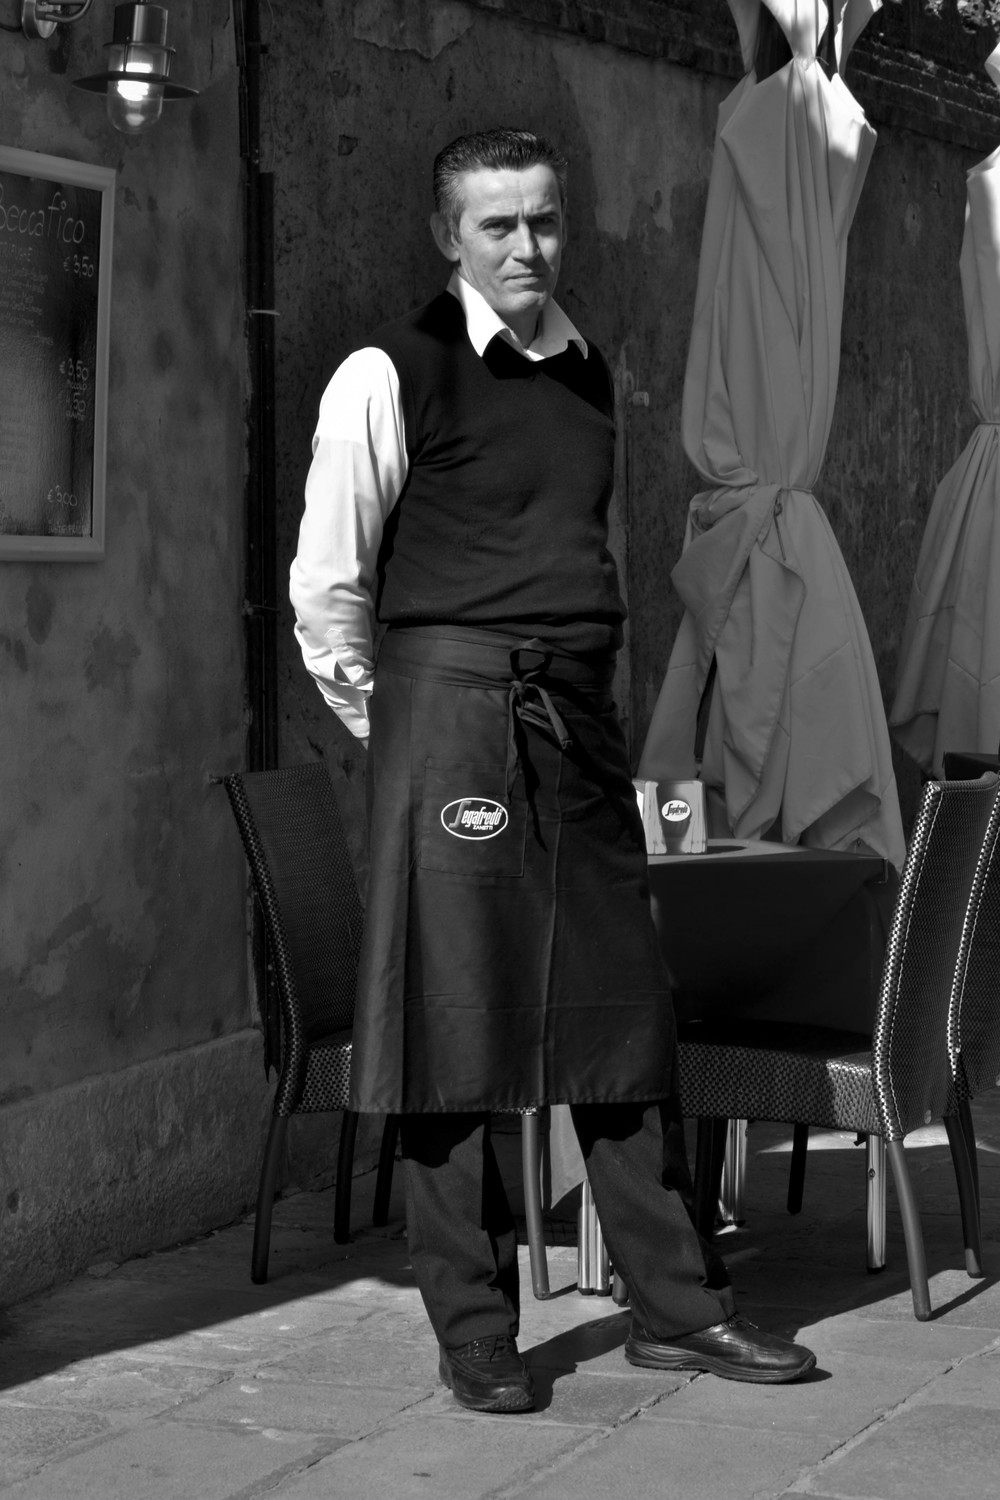 italian waiter low res.jpg